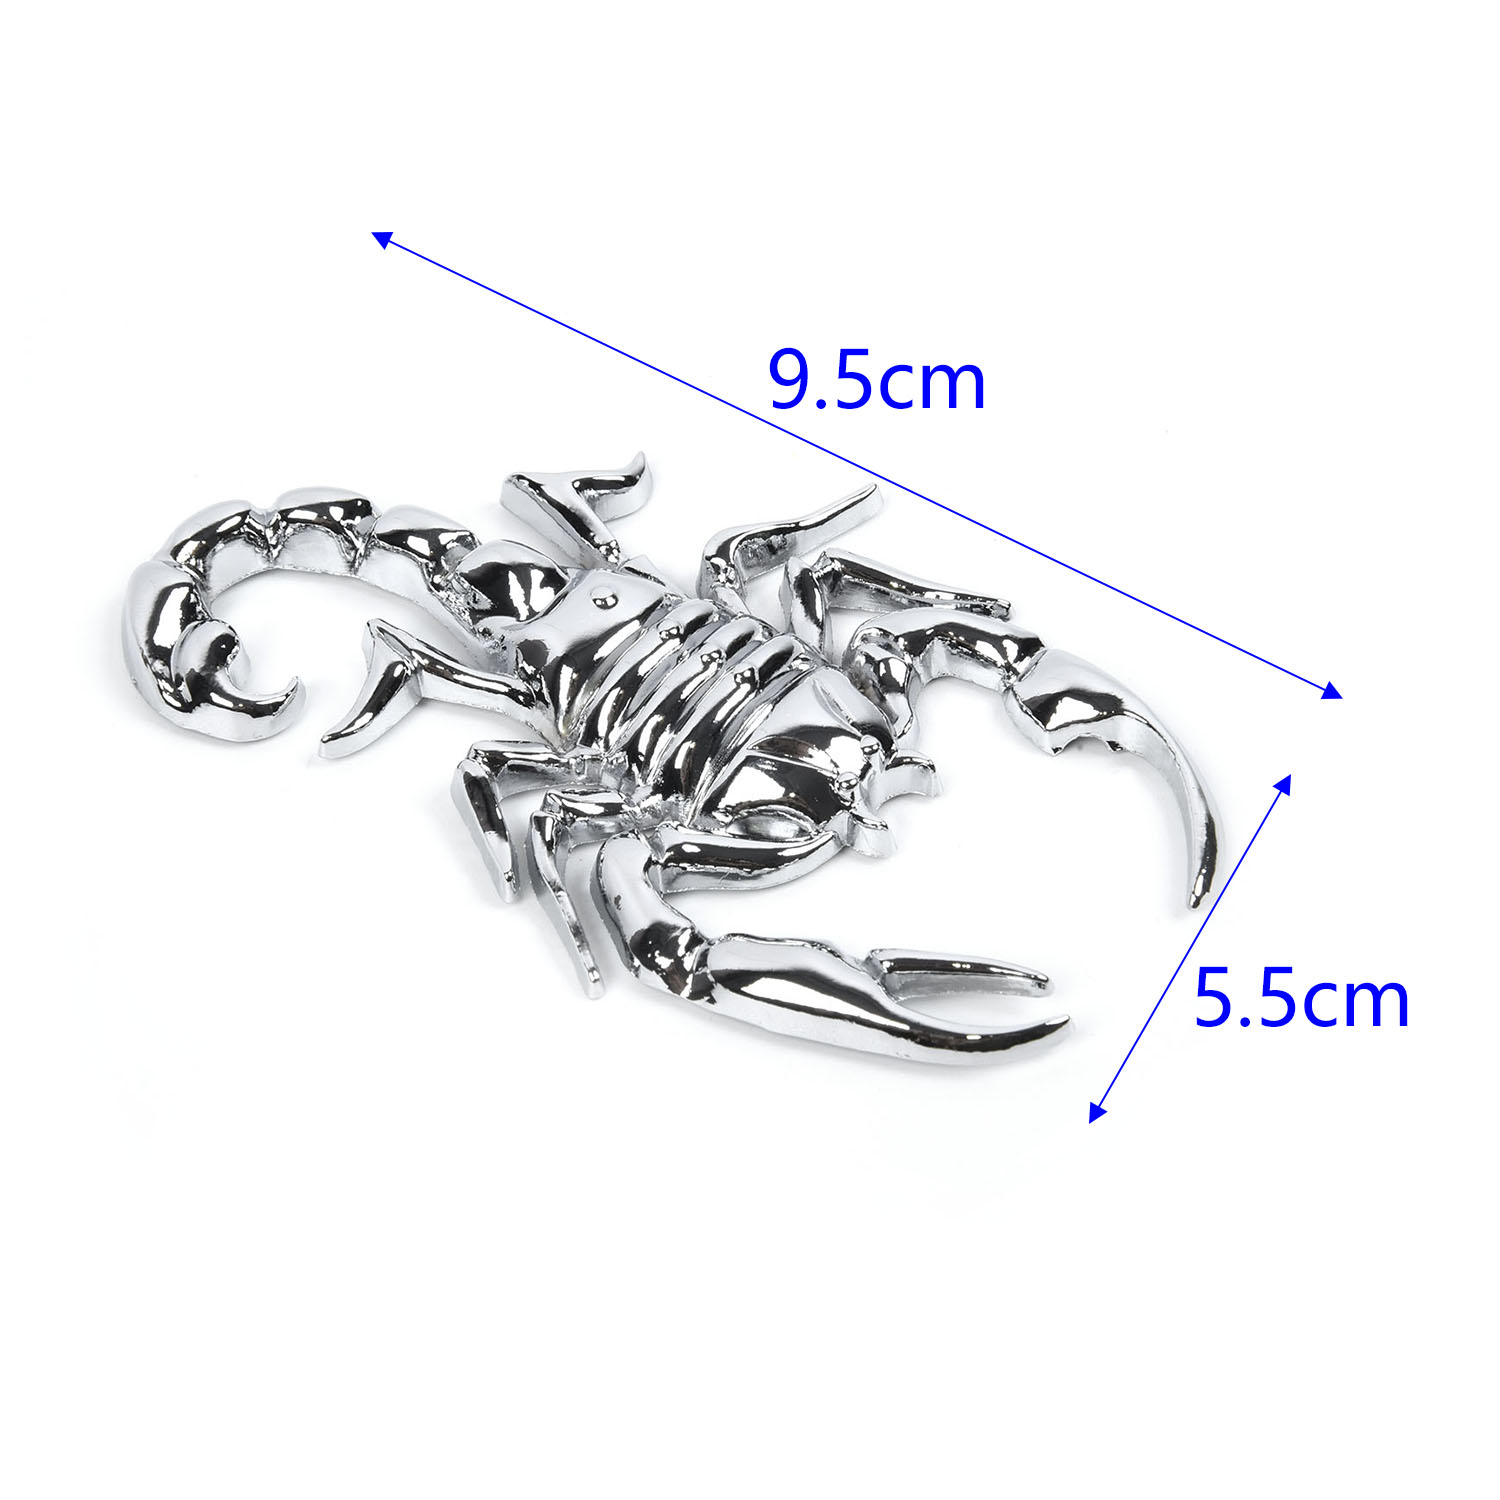 2 PCS Silver 3D Metal Car Stickers Scorpion Decals Car Trunk Body Animals Decals